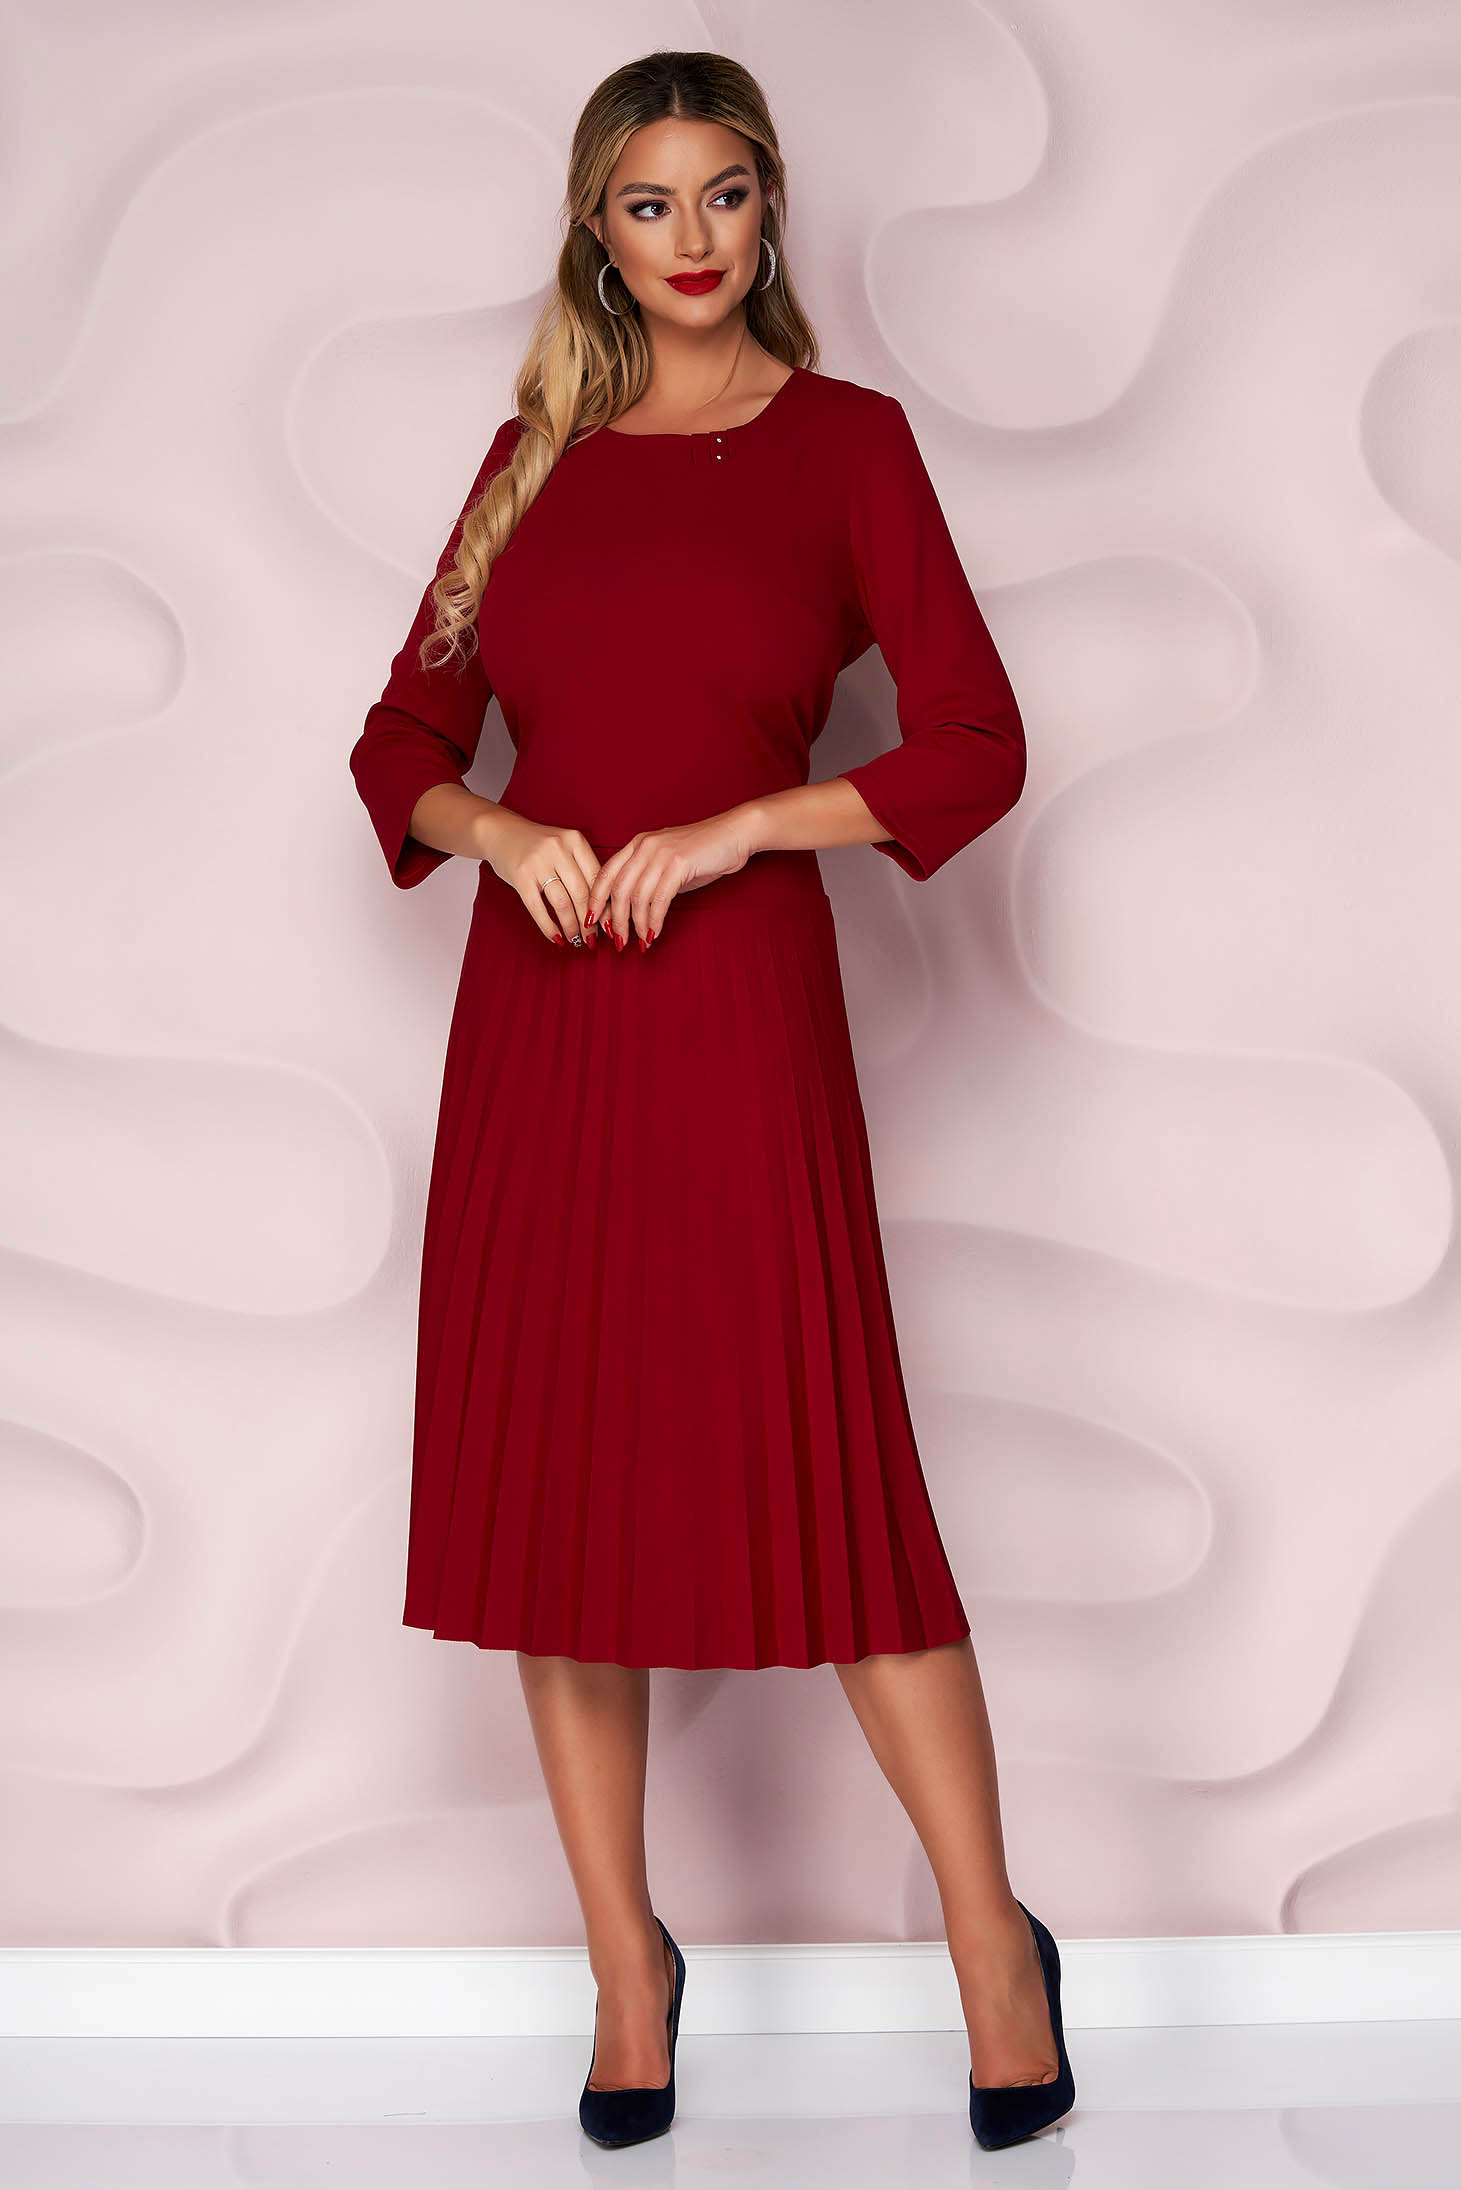 Burgundy dress casual cloche folded up thin fabric slightly elastic fabric with 3/4 sleeves